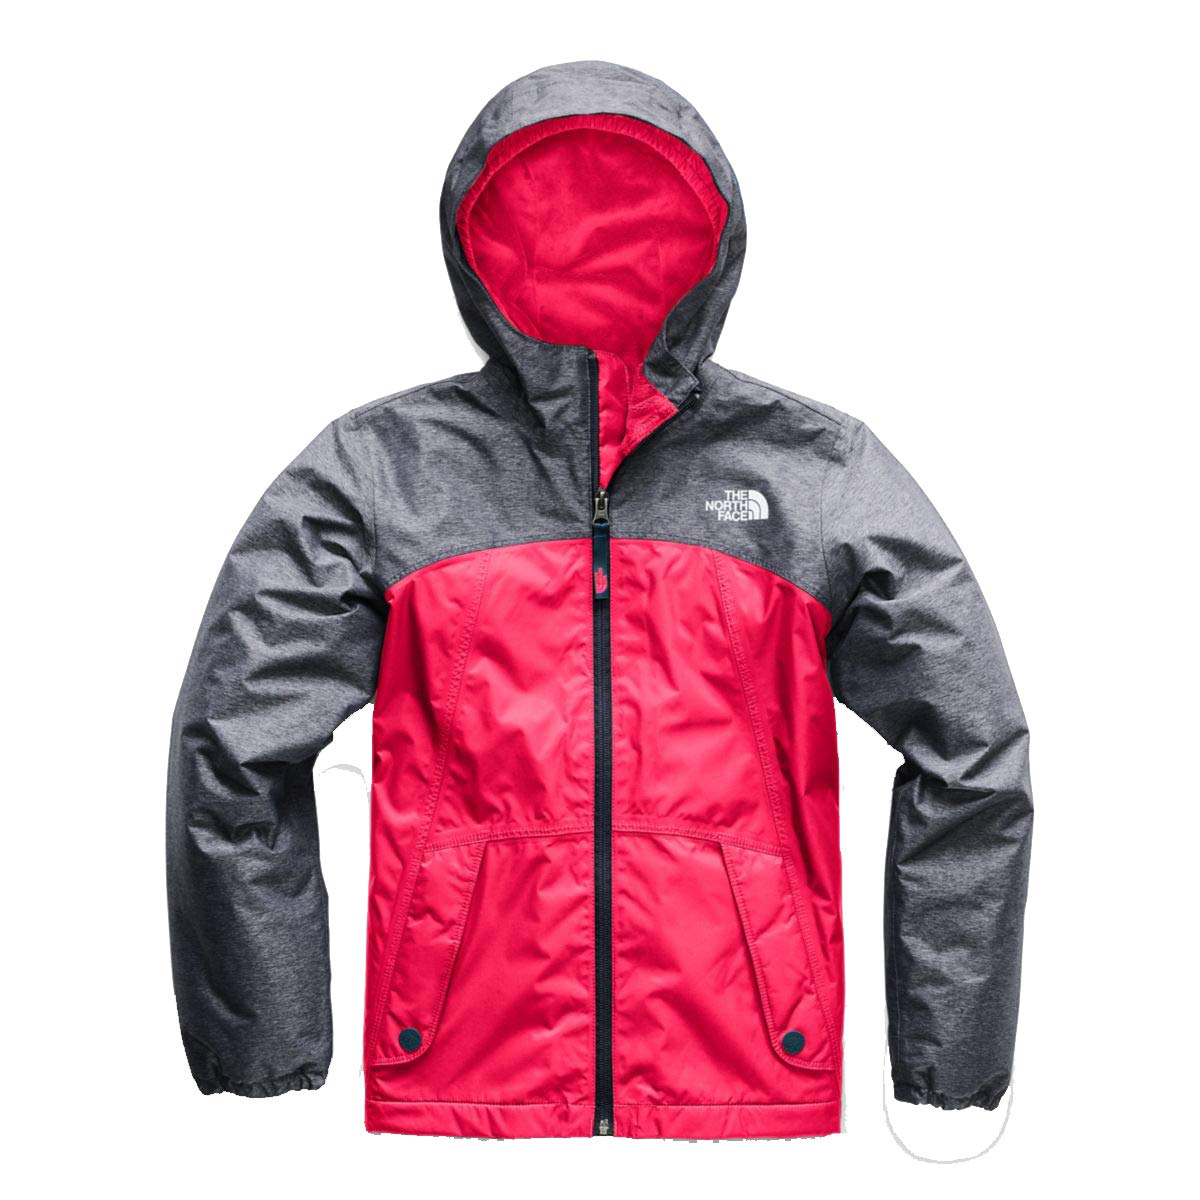 The North Face Girl's Warm Storm Jacket - Atomic Pink - L